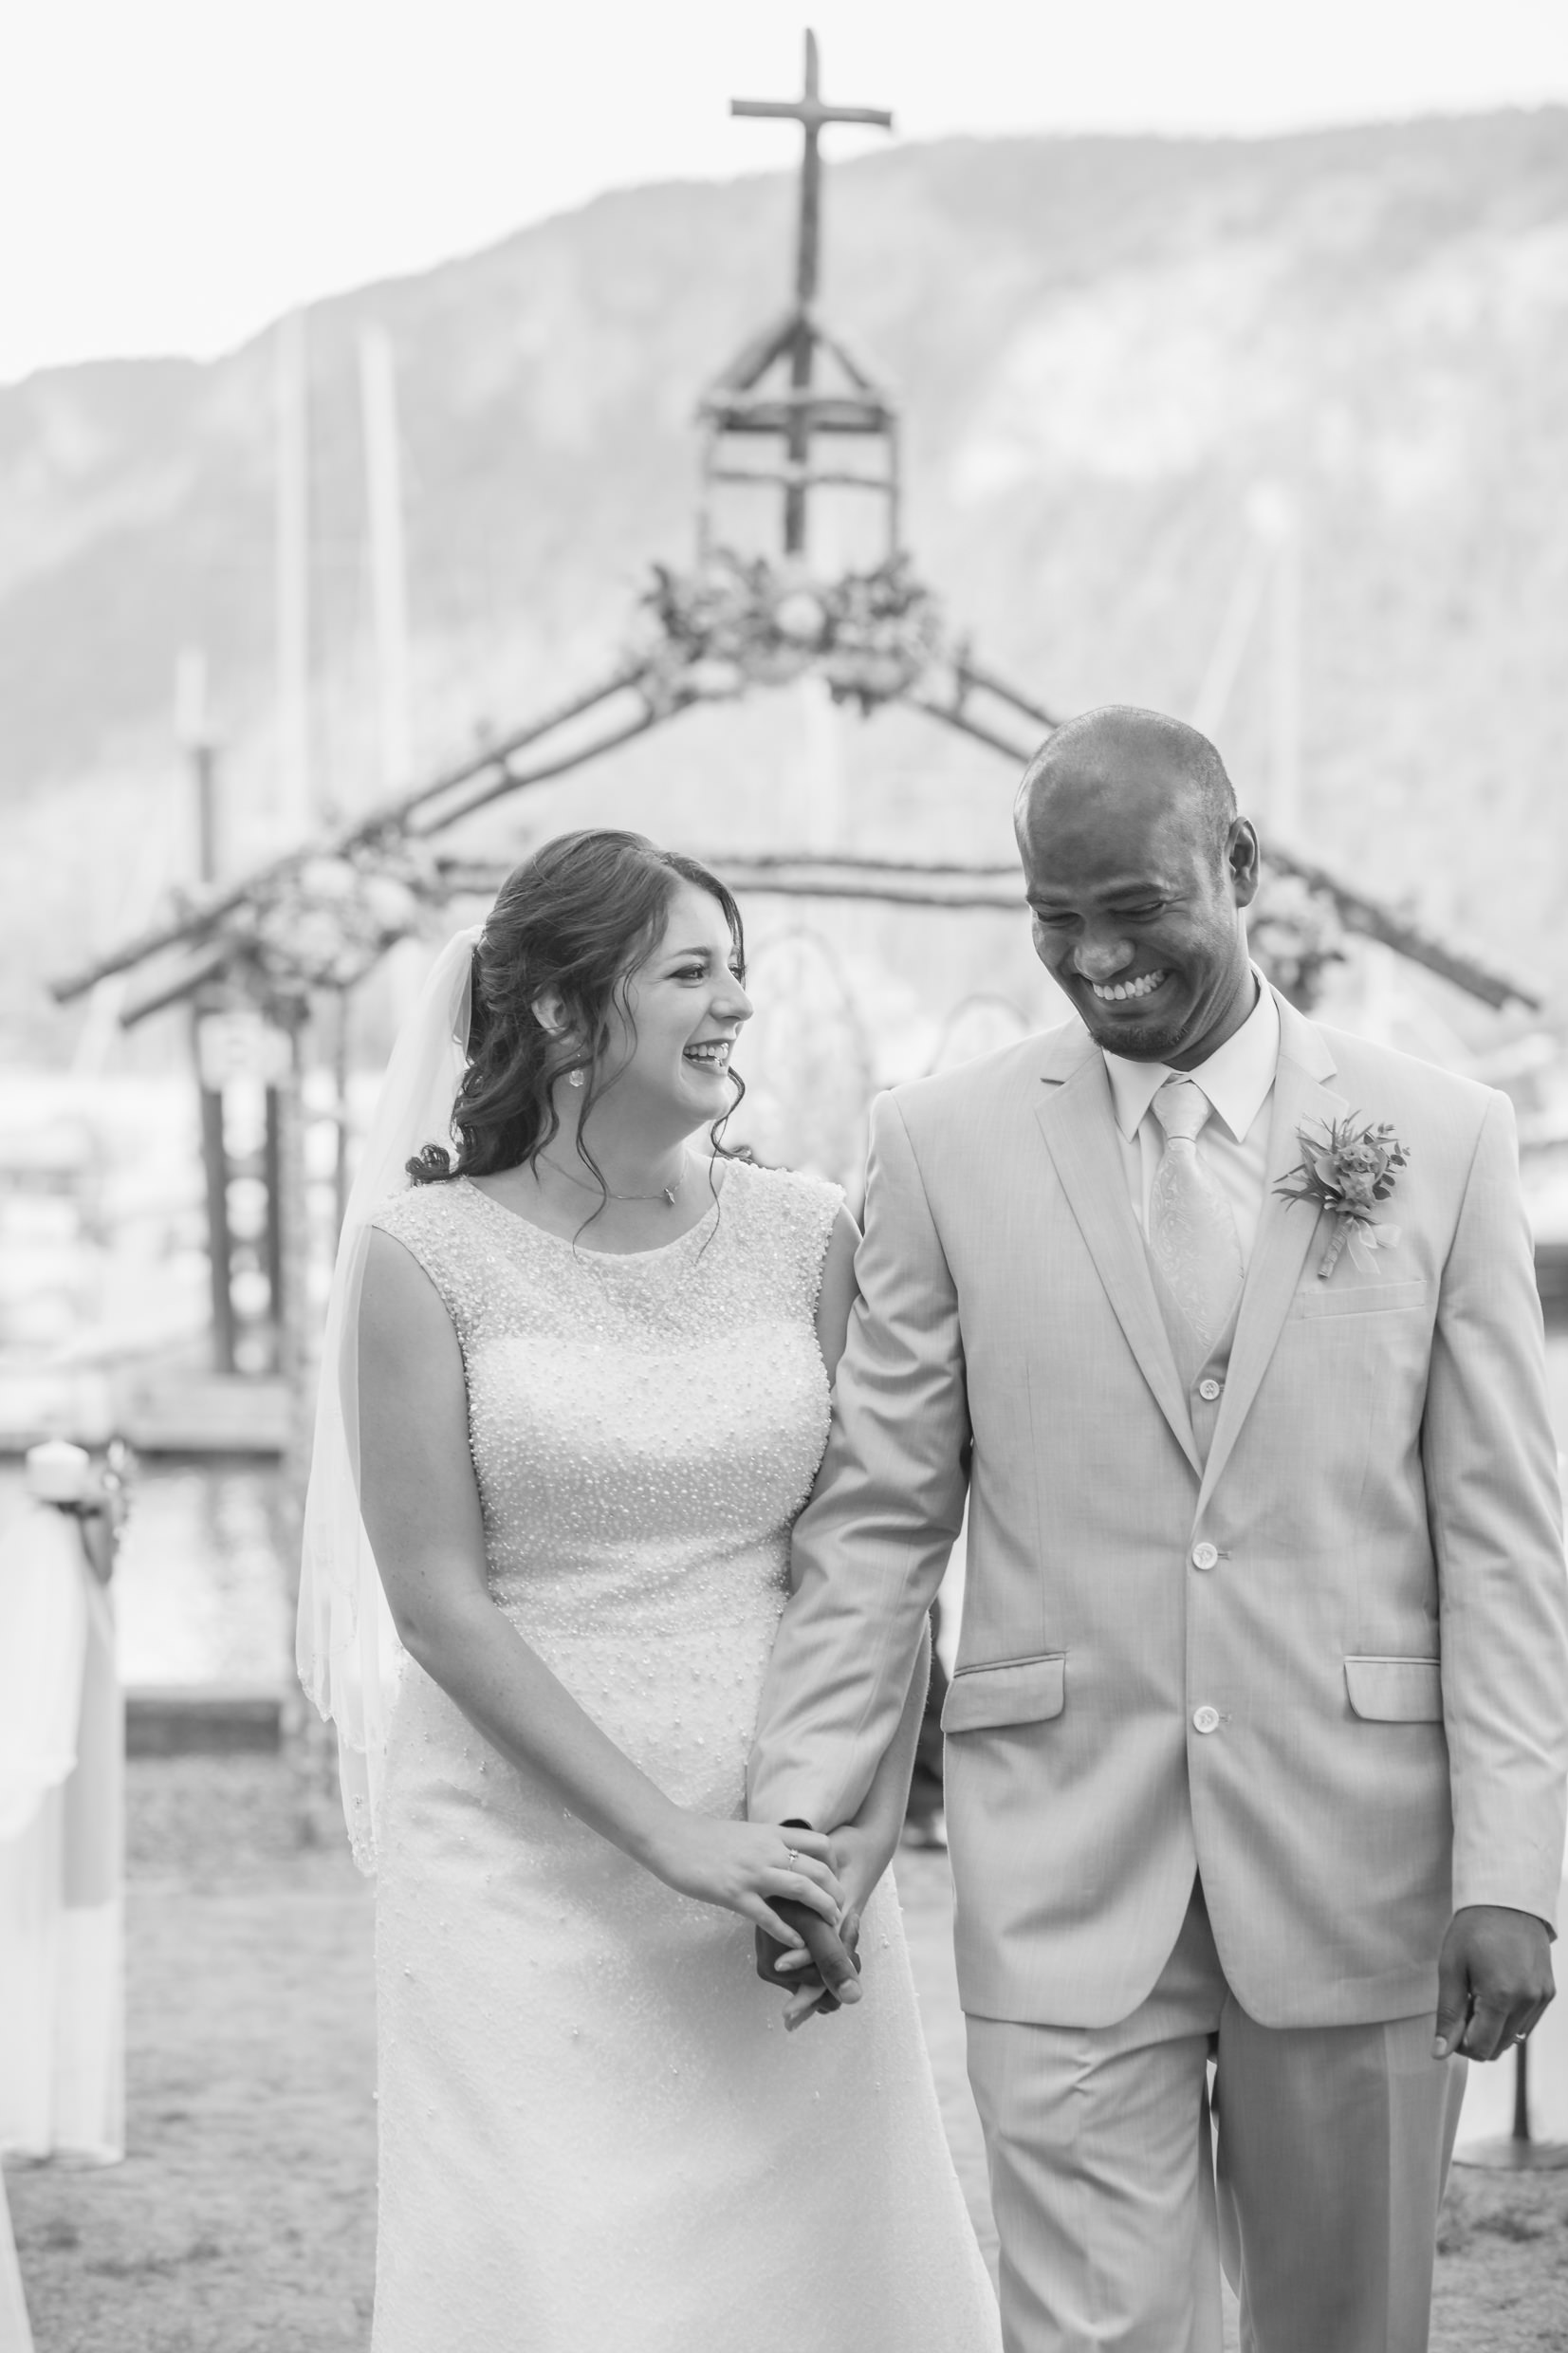 newleyweds at cowichan bay